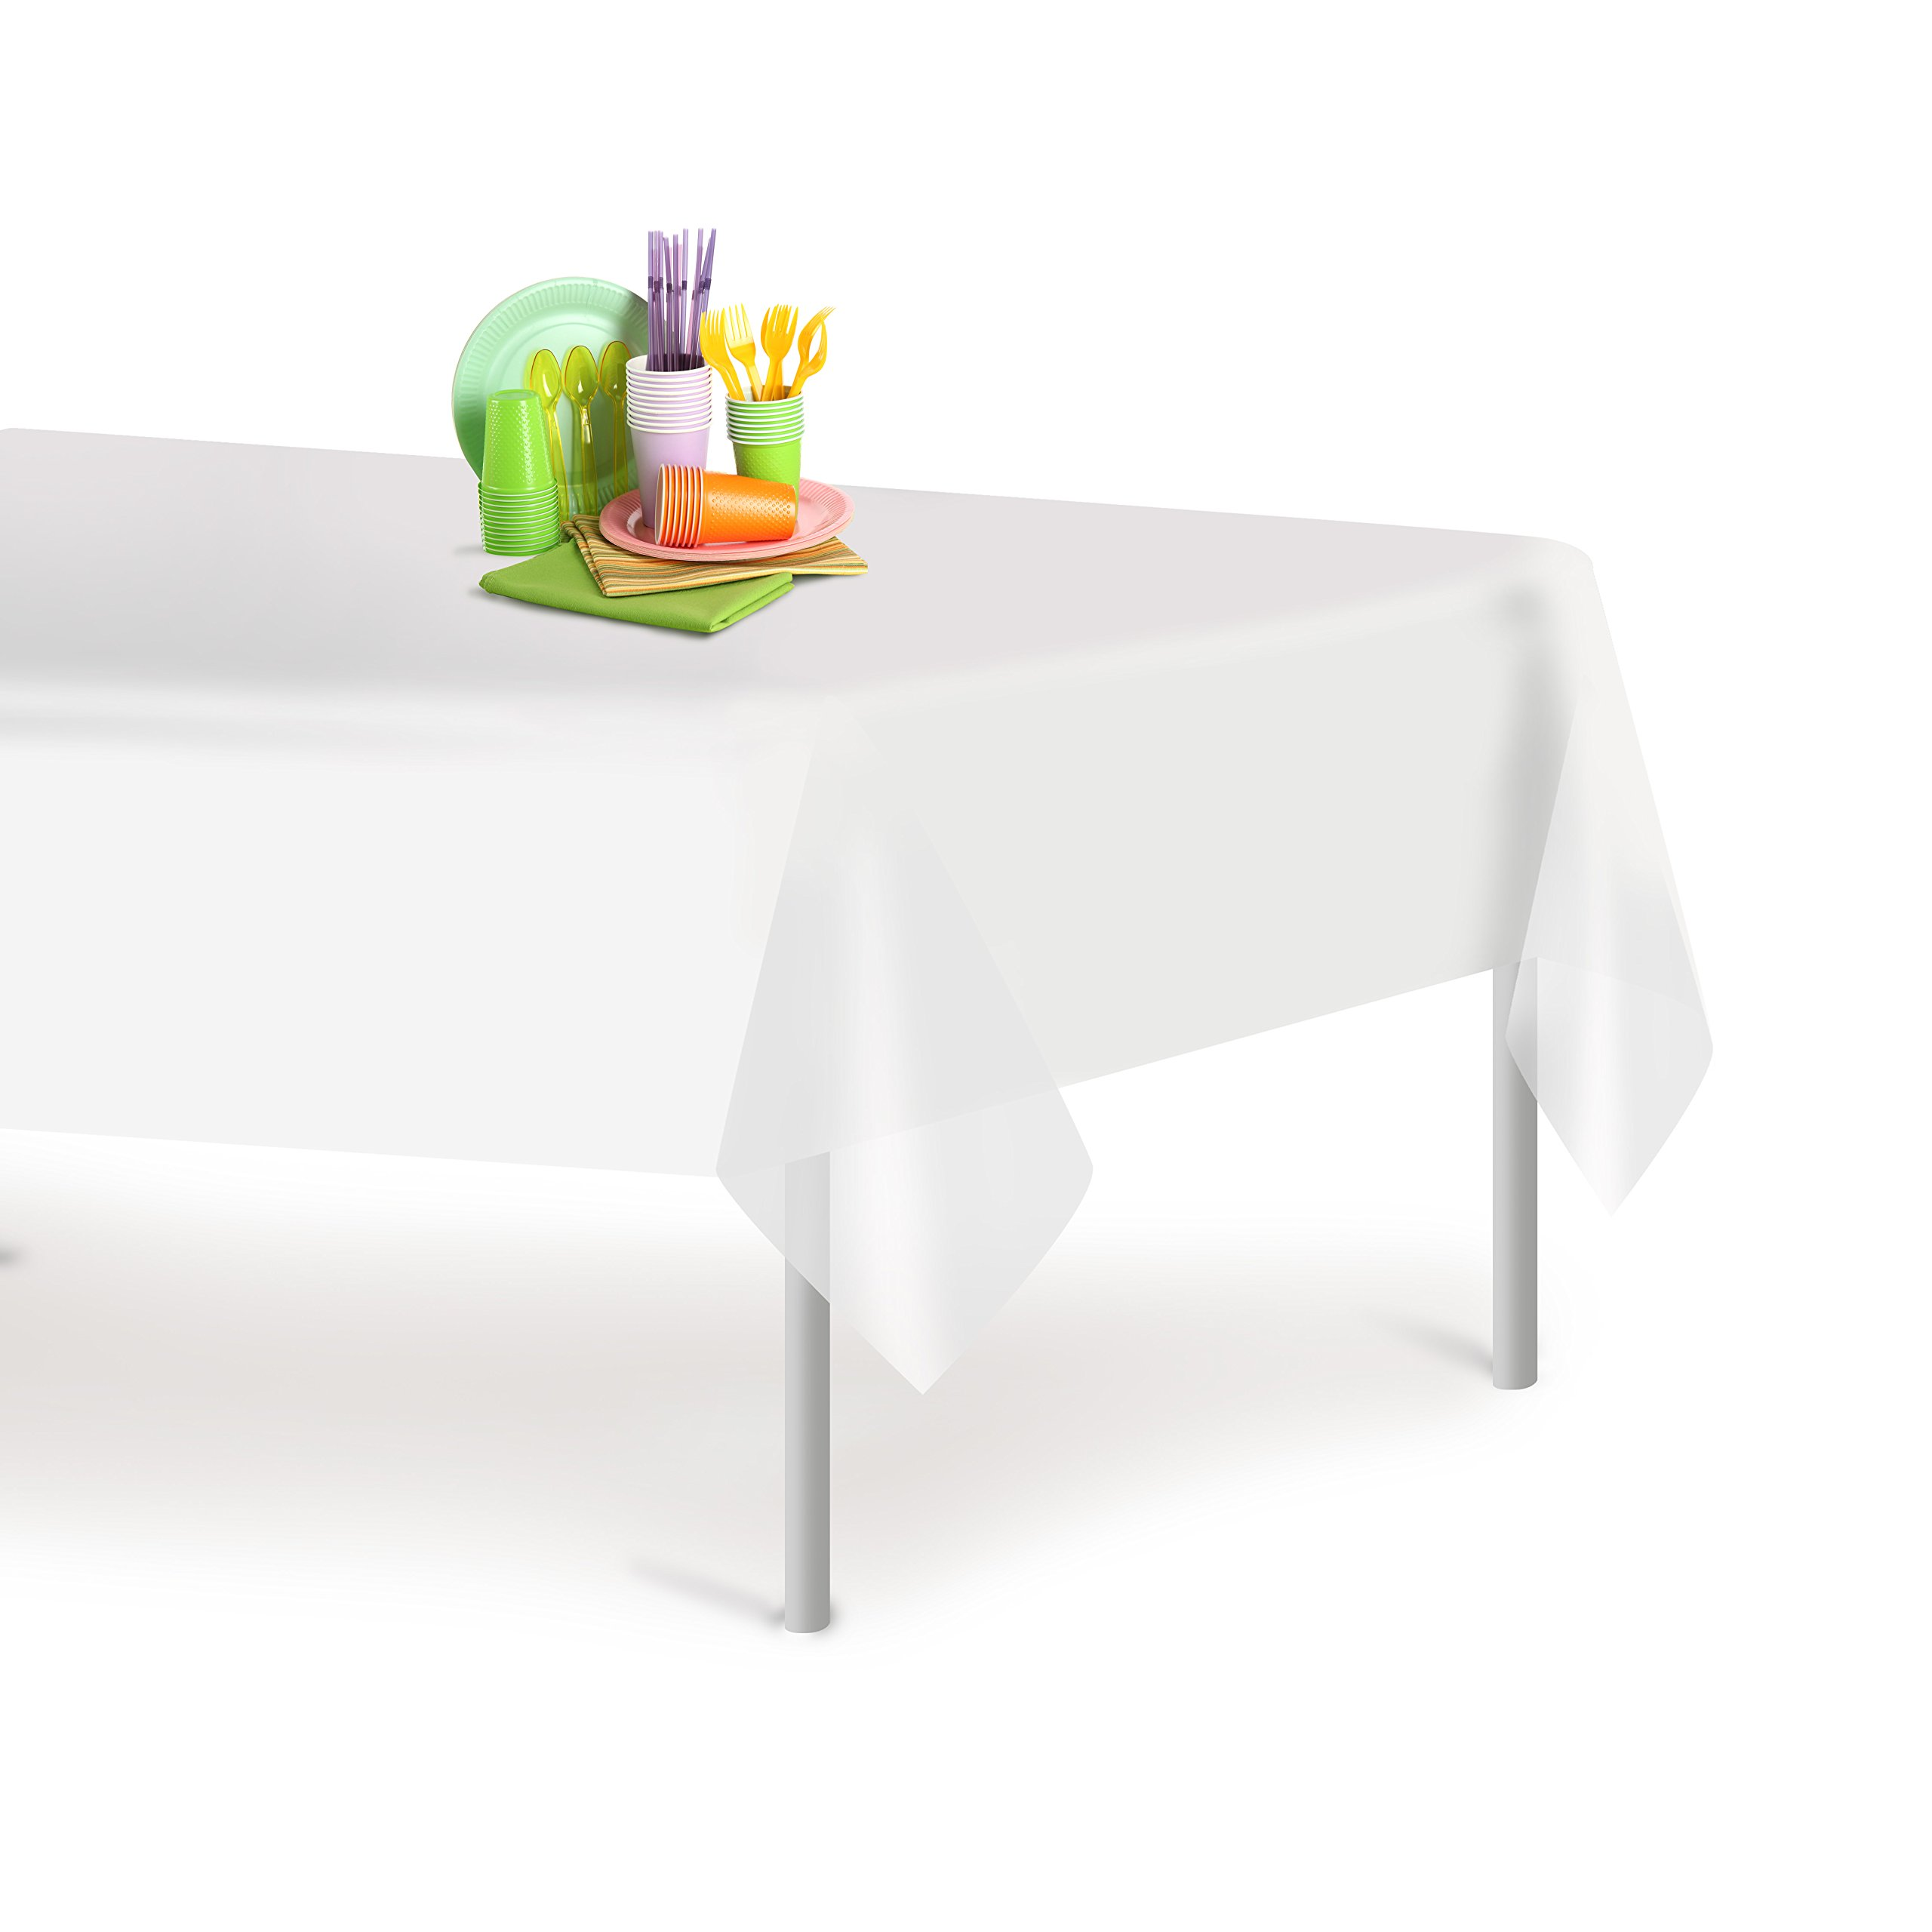 White 12 Pack Premium Disposable Plastic Tablecloth 54 Inch. x 108 Inch. Rectangle Table Cover By Dluxware by Grandipity